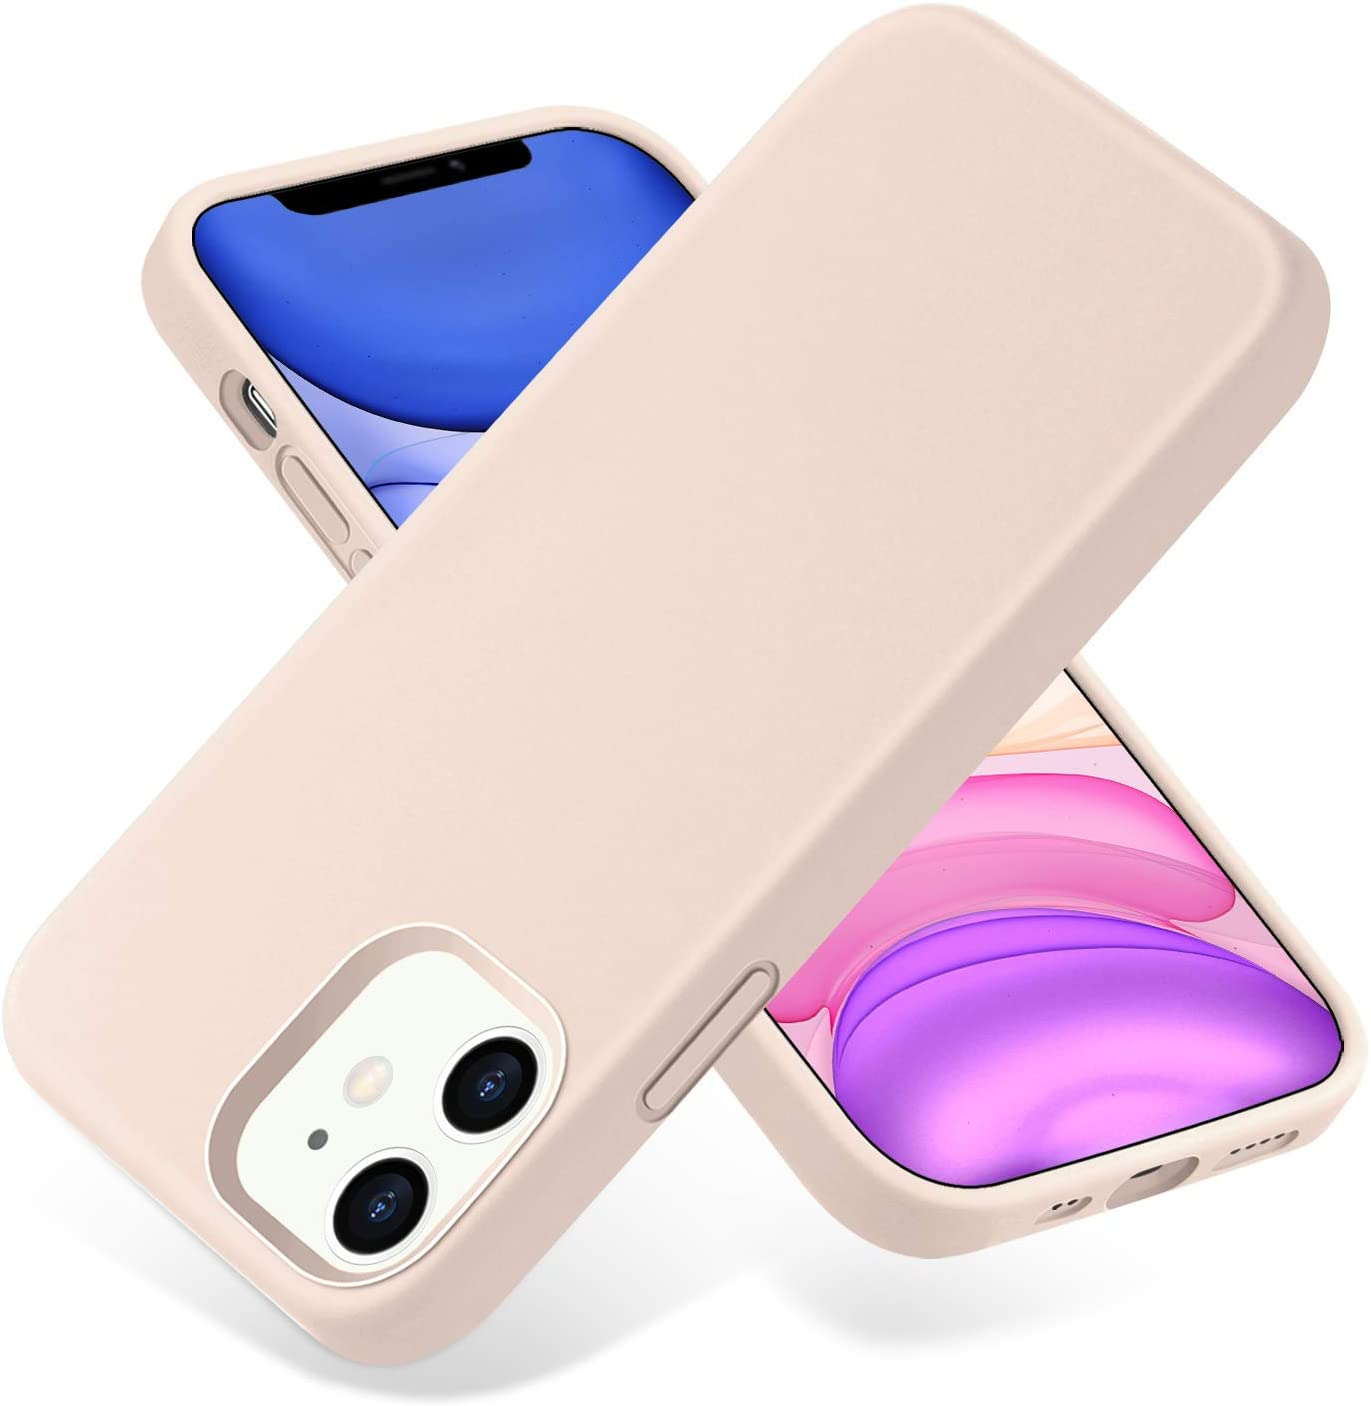 SNBLK Compatible with iPhone 12 Case/Compatible with iPhone 12 Pro Case Liquid Silicone 6.1 Inch (2020),Soft Thick Protective Rubber Cell Phone Basic Cases Covers for Women Men Girls Boys,Sand Pink